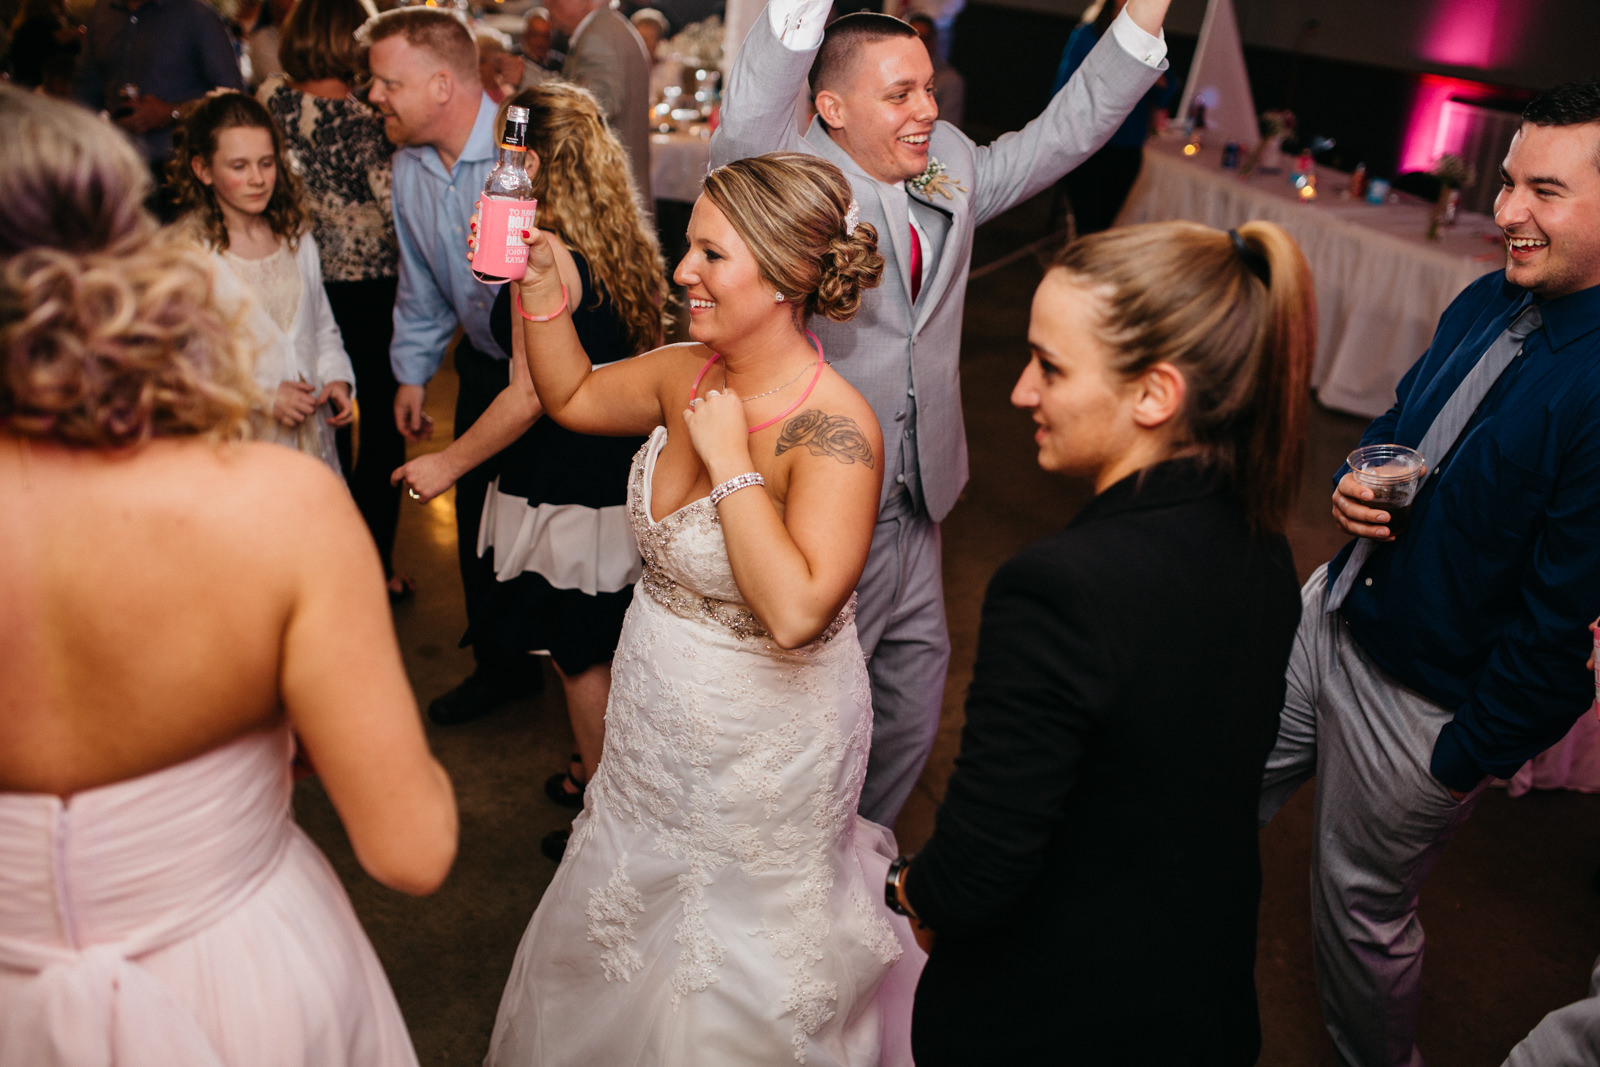 Bride and groom dancing at wedding reception at Fulton County Fairgrounds